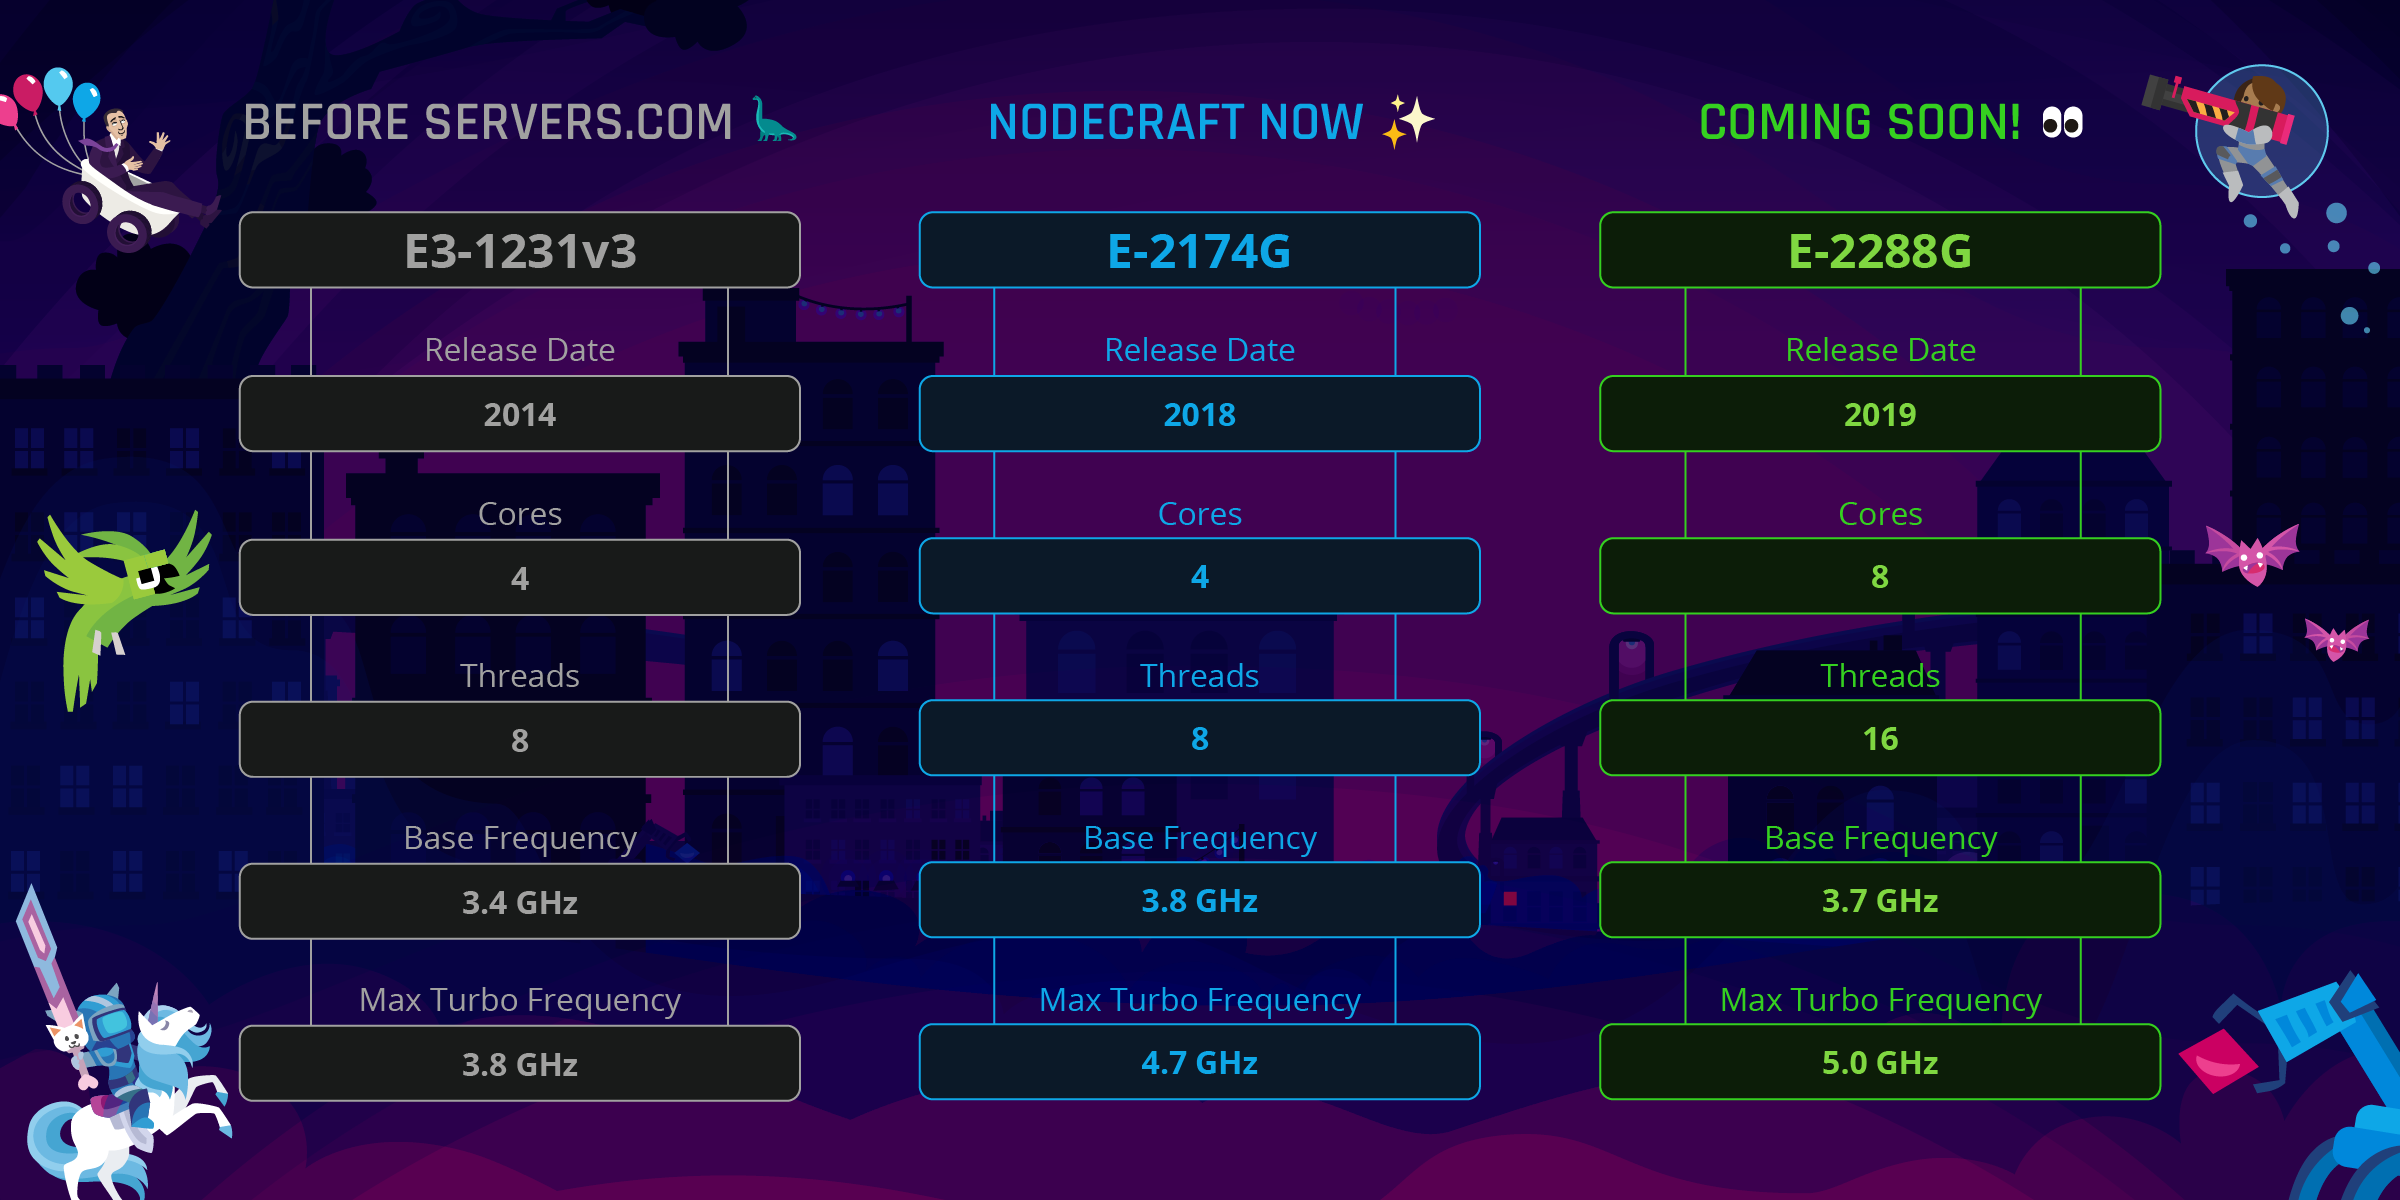 Chart comparing Nodecraft.com server specifications in the past, present, and future. Always increasing in performance.